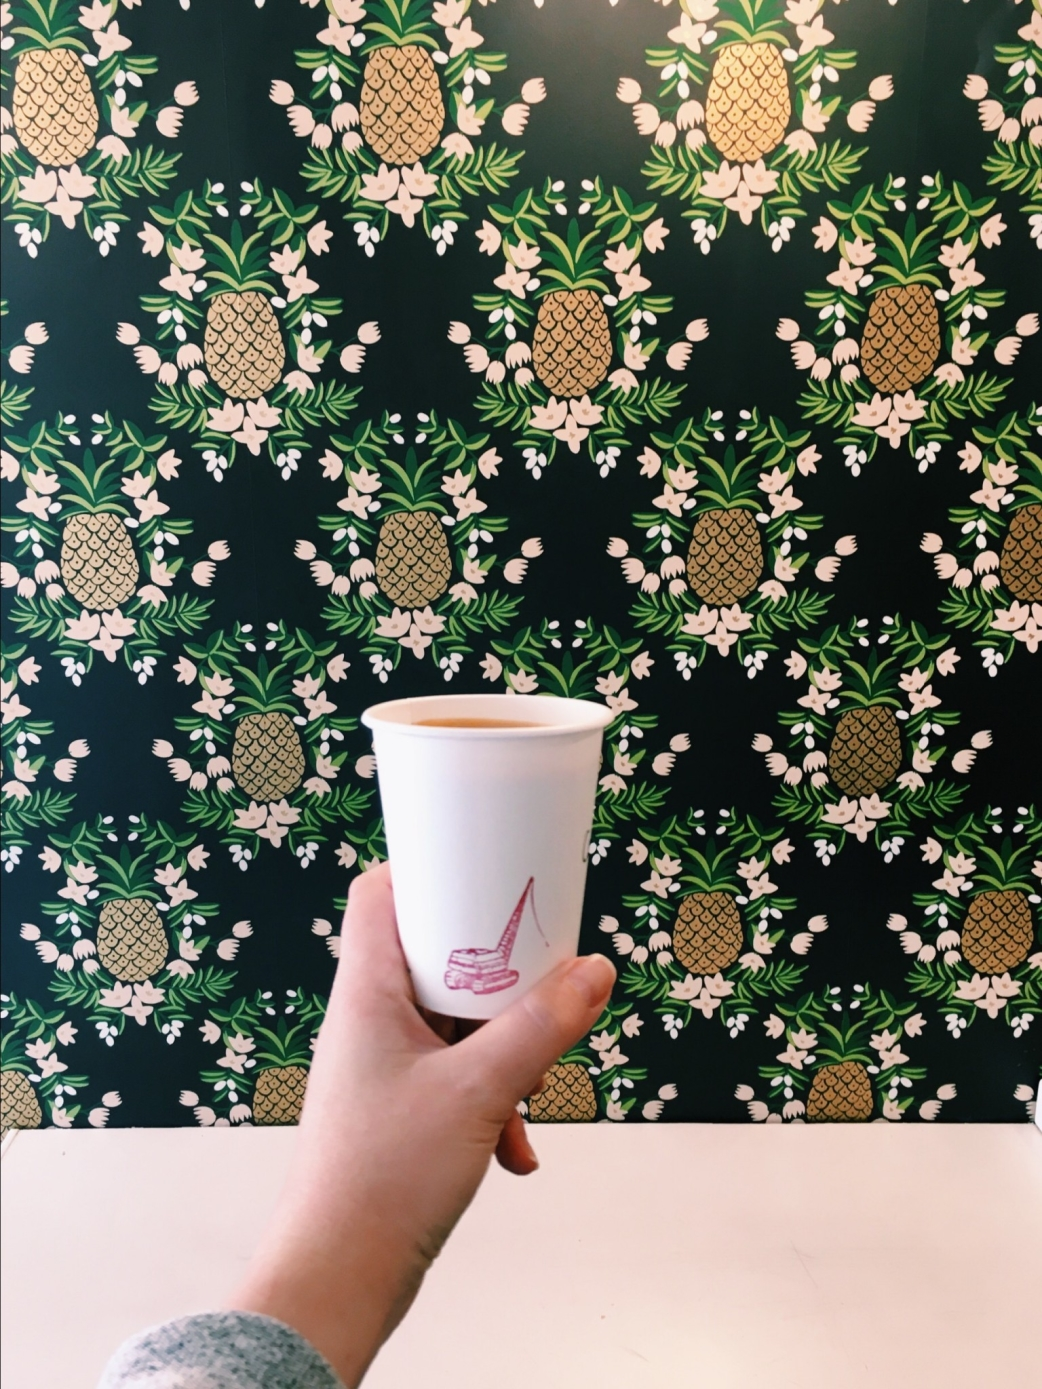 where to work remotely in SF - Wrecking Ball Coffee on Union Street